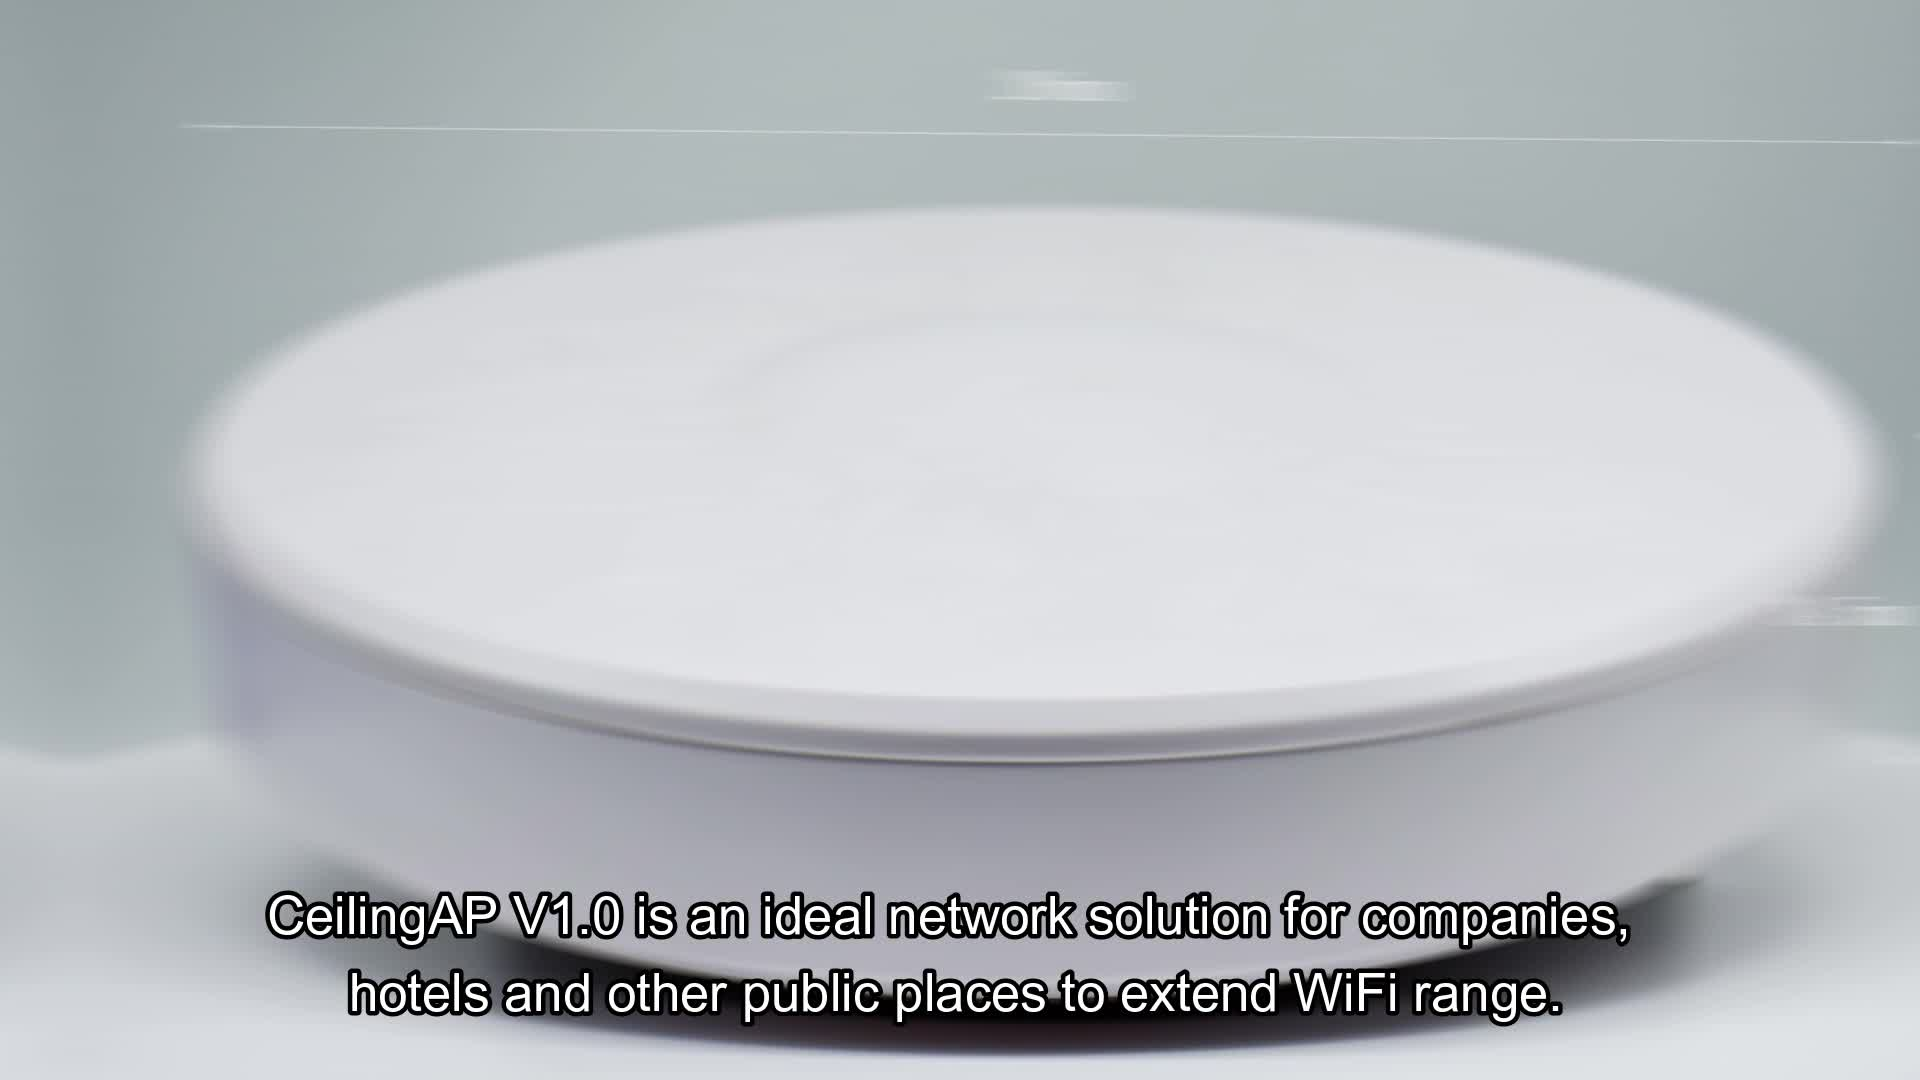 650mhz Qca9531 MT7621A 192.168.0.1 bluetooth 4G LTE wifi wireless openwrt ceiling AP mount uart router